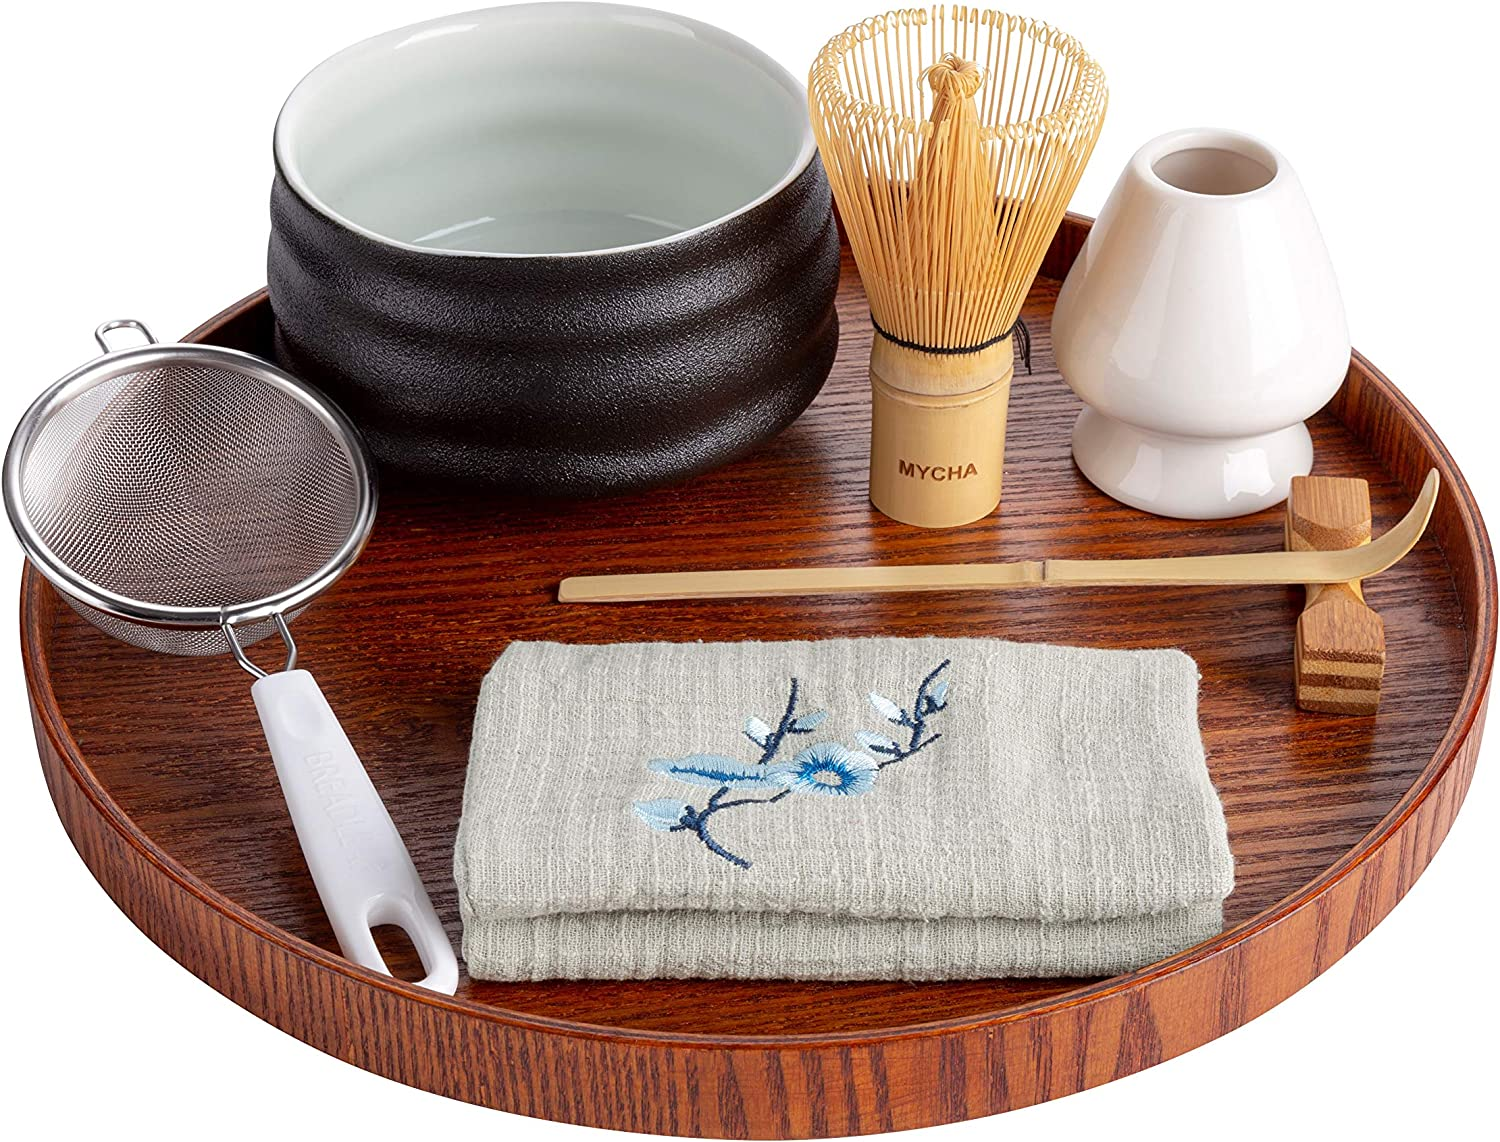 Japanese Handcrafted Matcha Tea Bowl-Bamboo Whisk-Scoop-Scoop Holder-Stainless Steel Sifter-Ceramic Whisk Holder-Tea Cloth-Tea Tray,Prep Guide MYCHA-Complete Matcha Ceremony Gift Set Black pottery